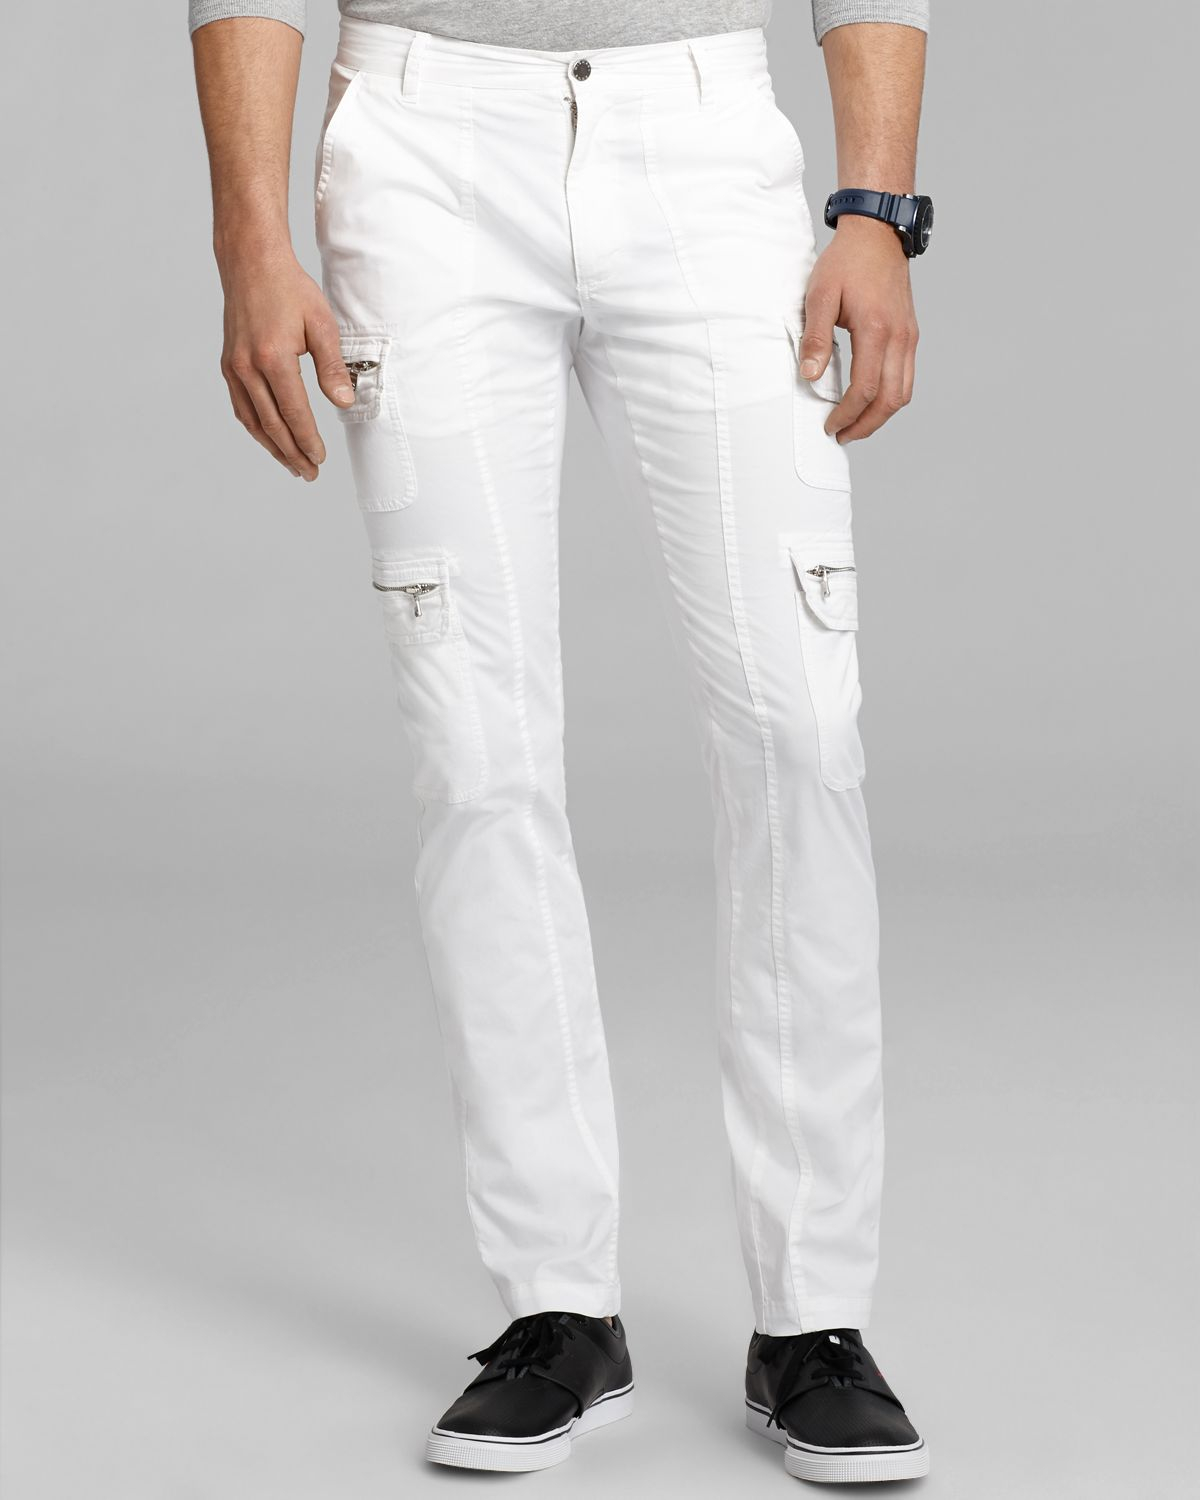 Mens White Cargo Pants | Pant So